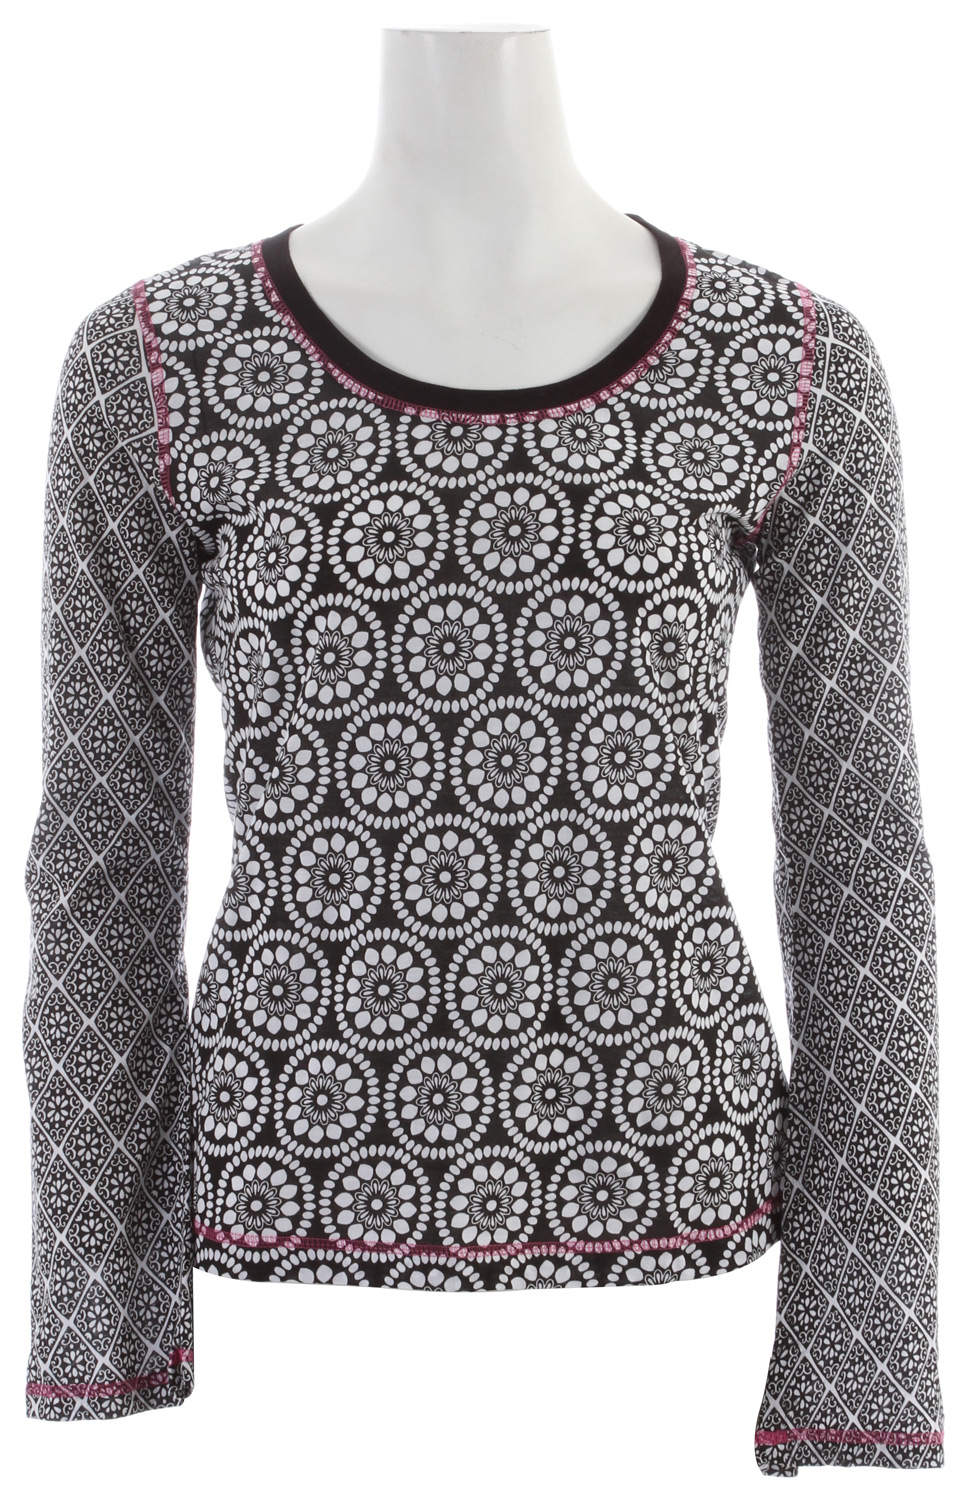 Key Features of the Prana Lisette L/S Top: 100% organic cotton Jersey Scoop neck top with mixed prints - $60.00